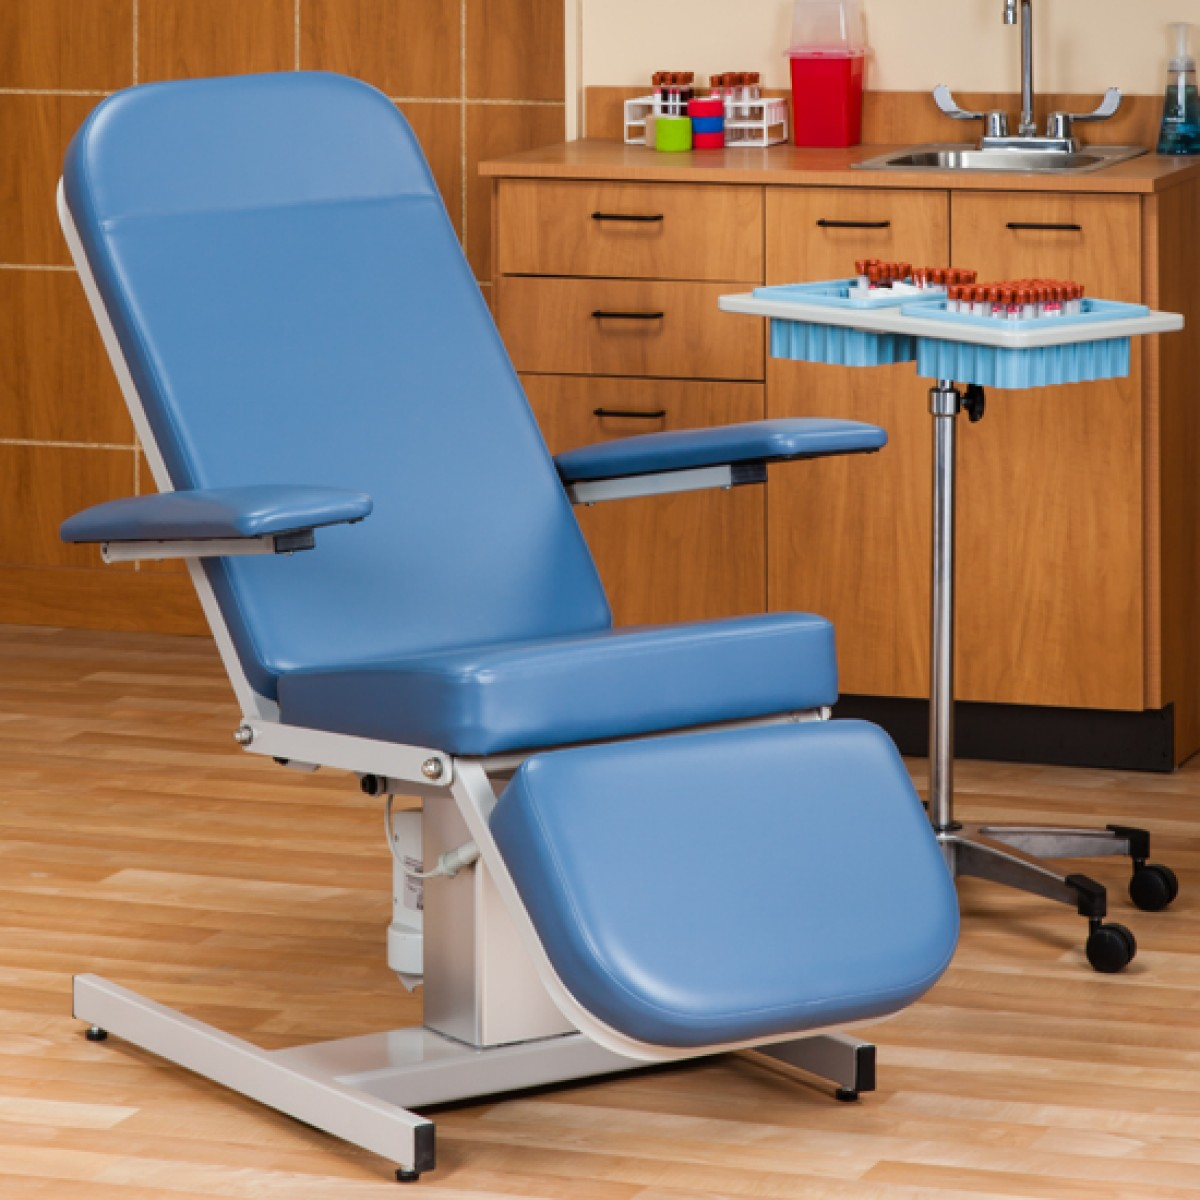 Phenomenal Clinton 6810 Power Hi Lo Reclining Blood Draw Chair Beatyapartments Chair Design Images Beatyapartmentscom